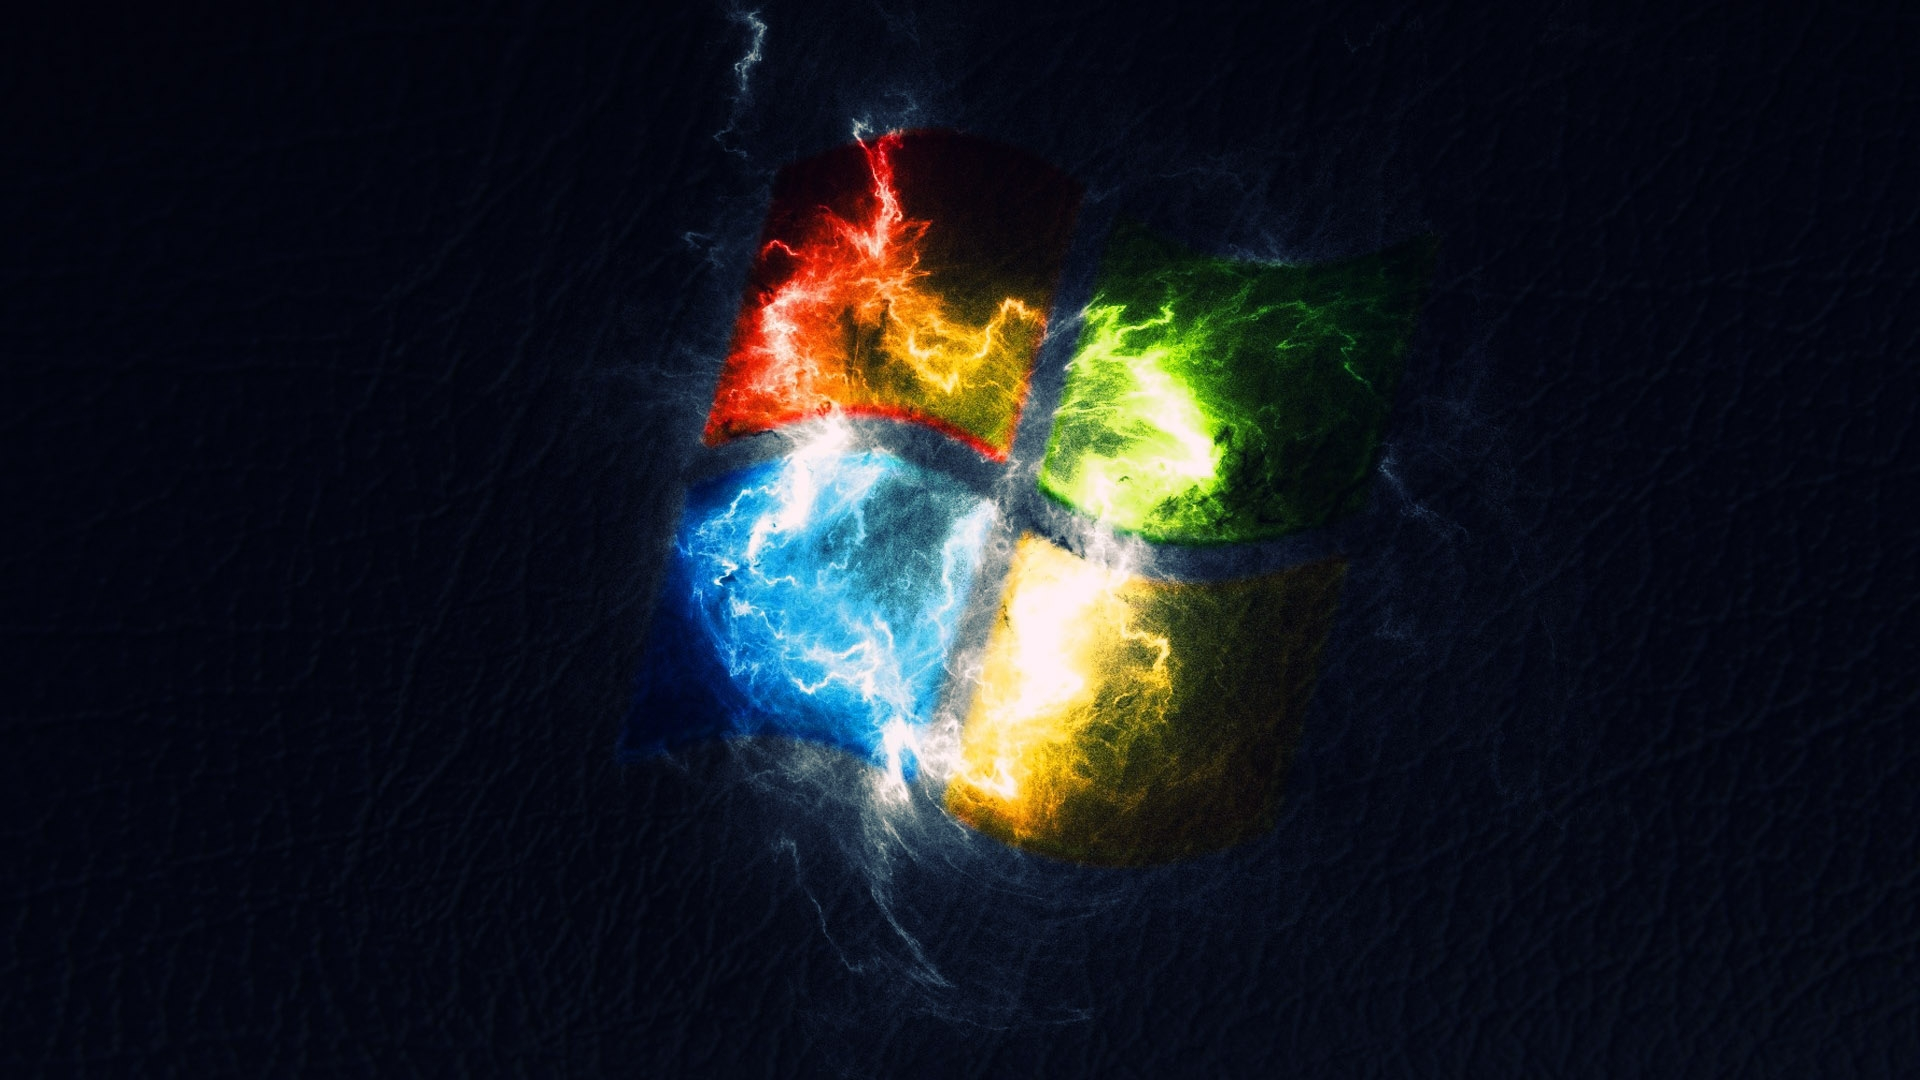 Abstract 1080p Wallpaper HD wallpaper background 1920x1080